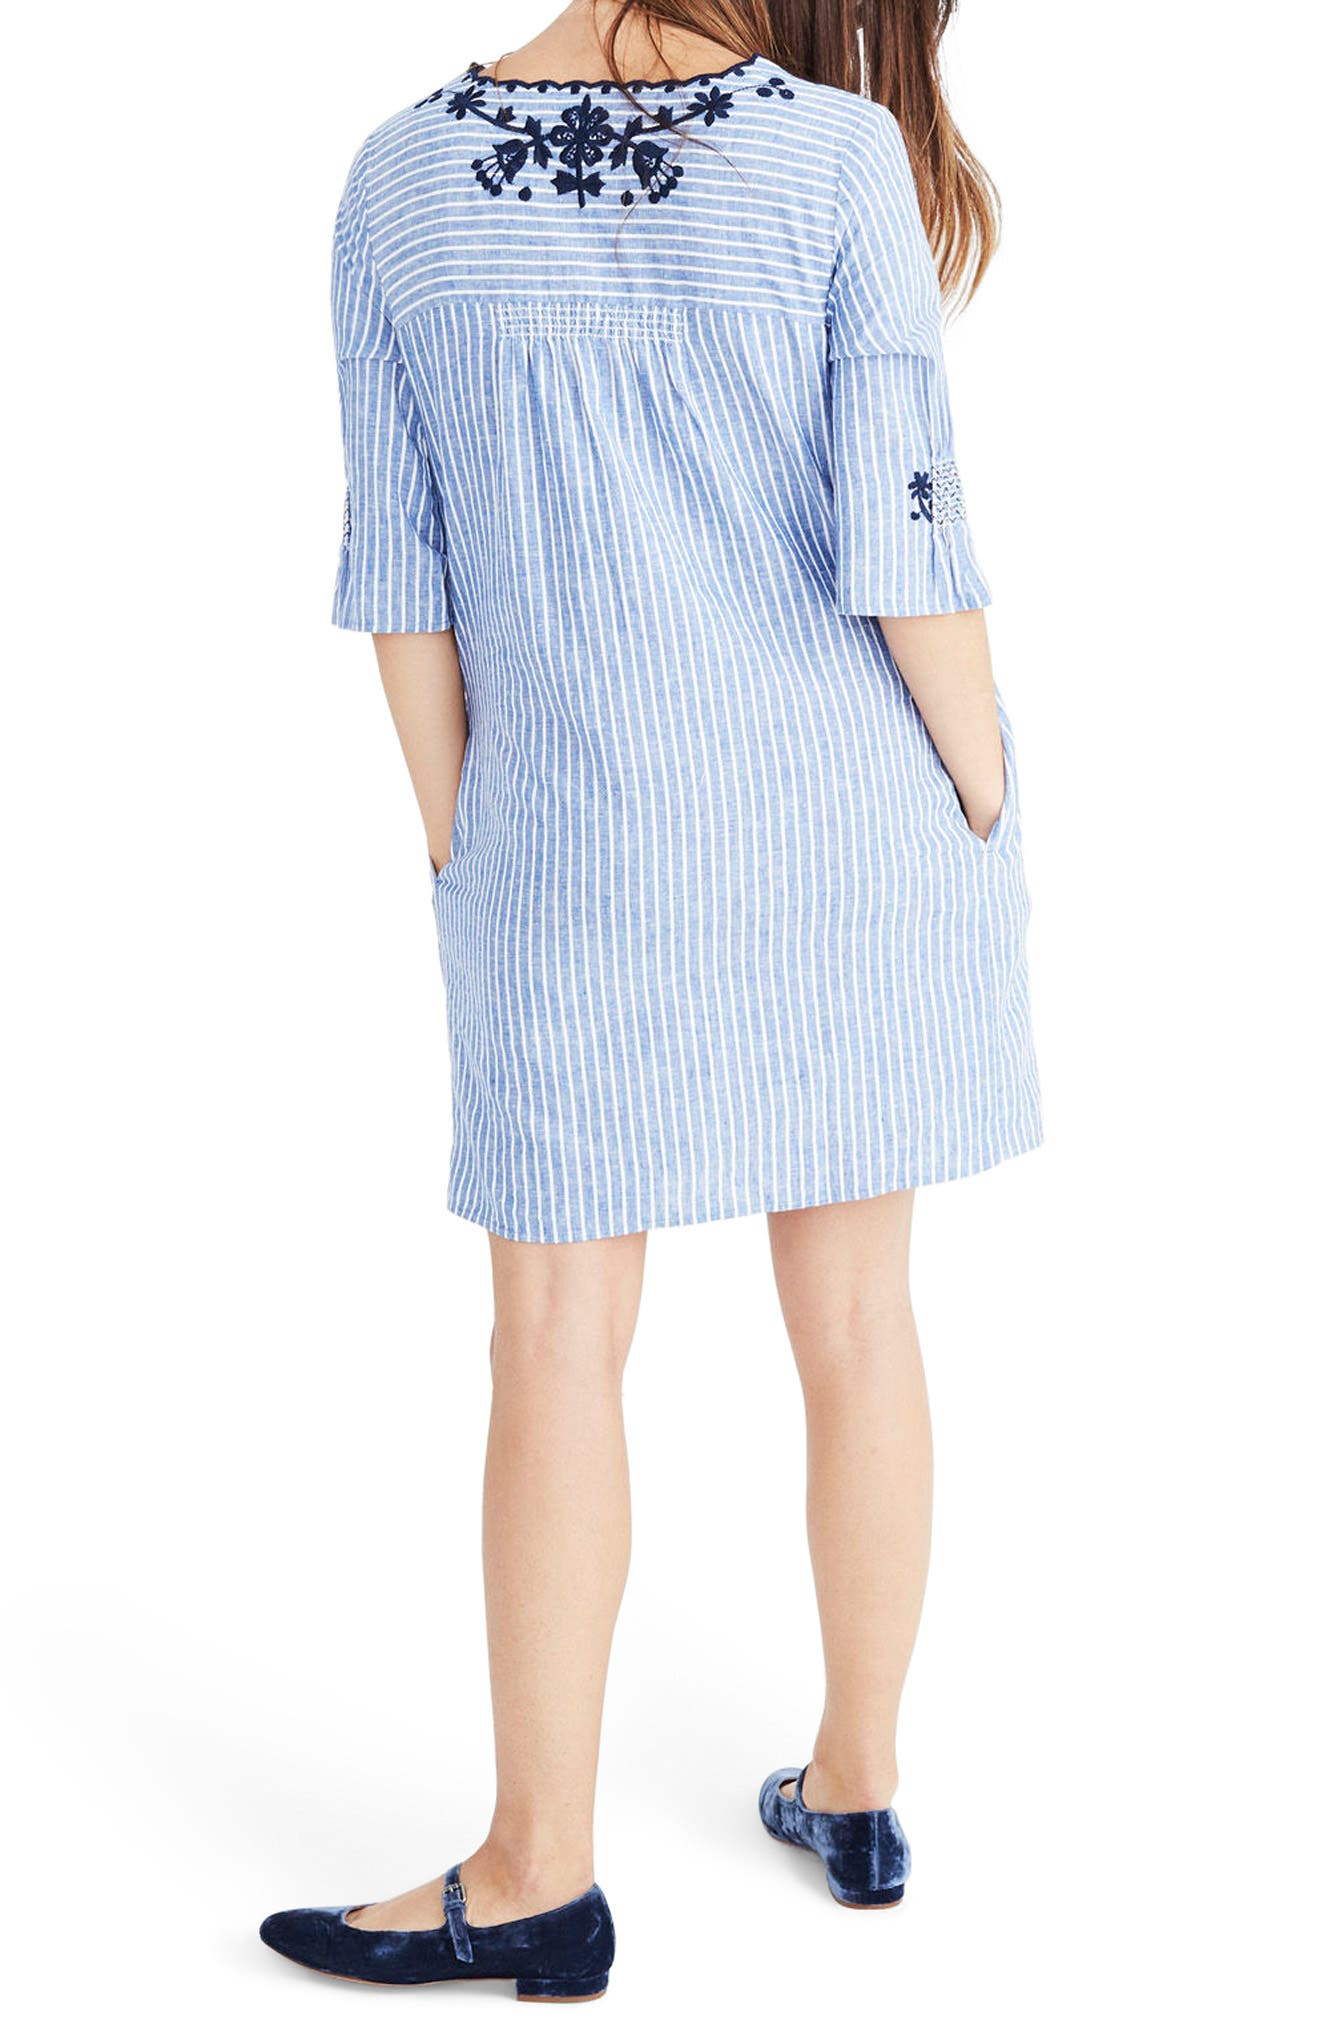 Breeze Embroidered Shift Dress,                             Alternate thumbnail 2, color,                             400